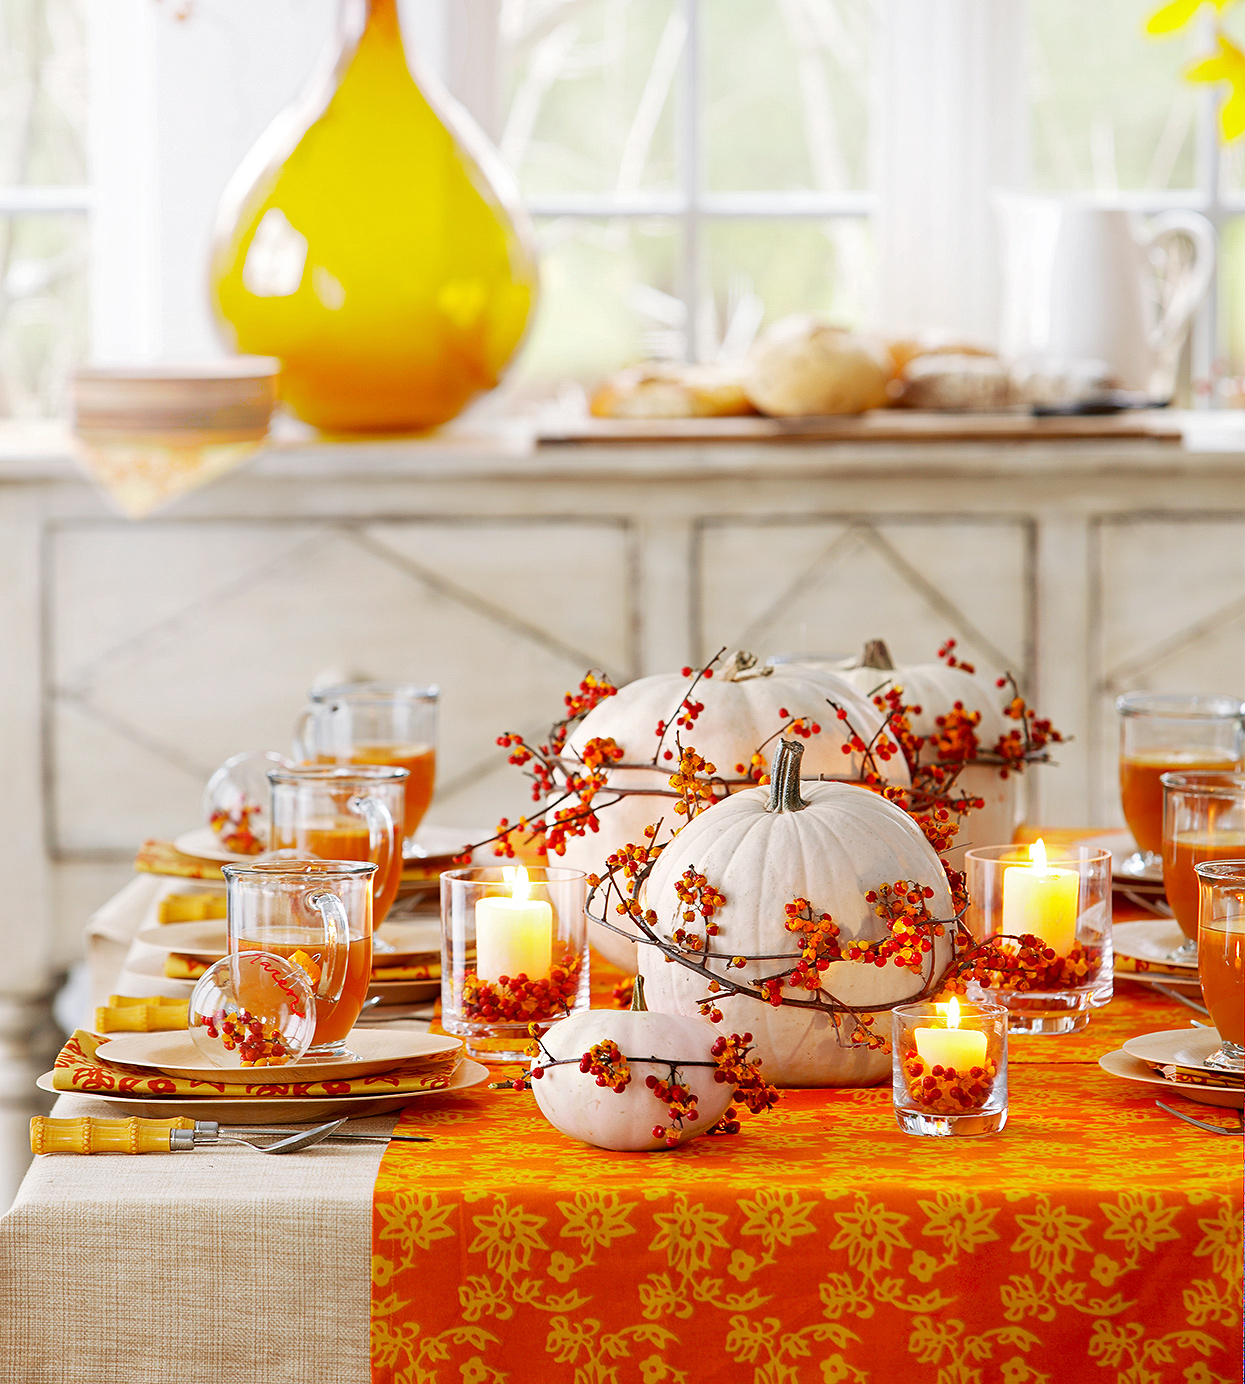 Bittersweet Fall Table Decor